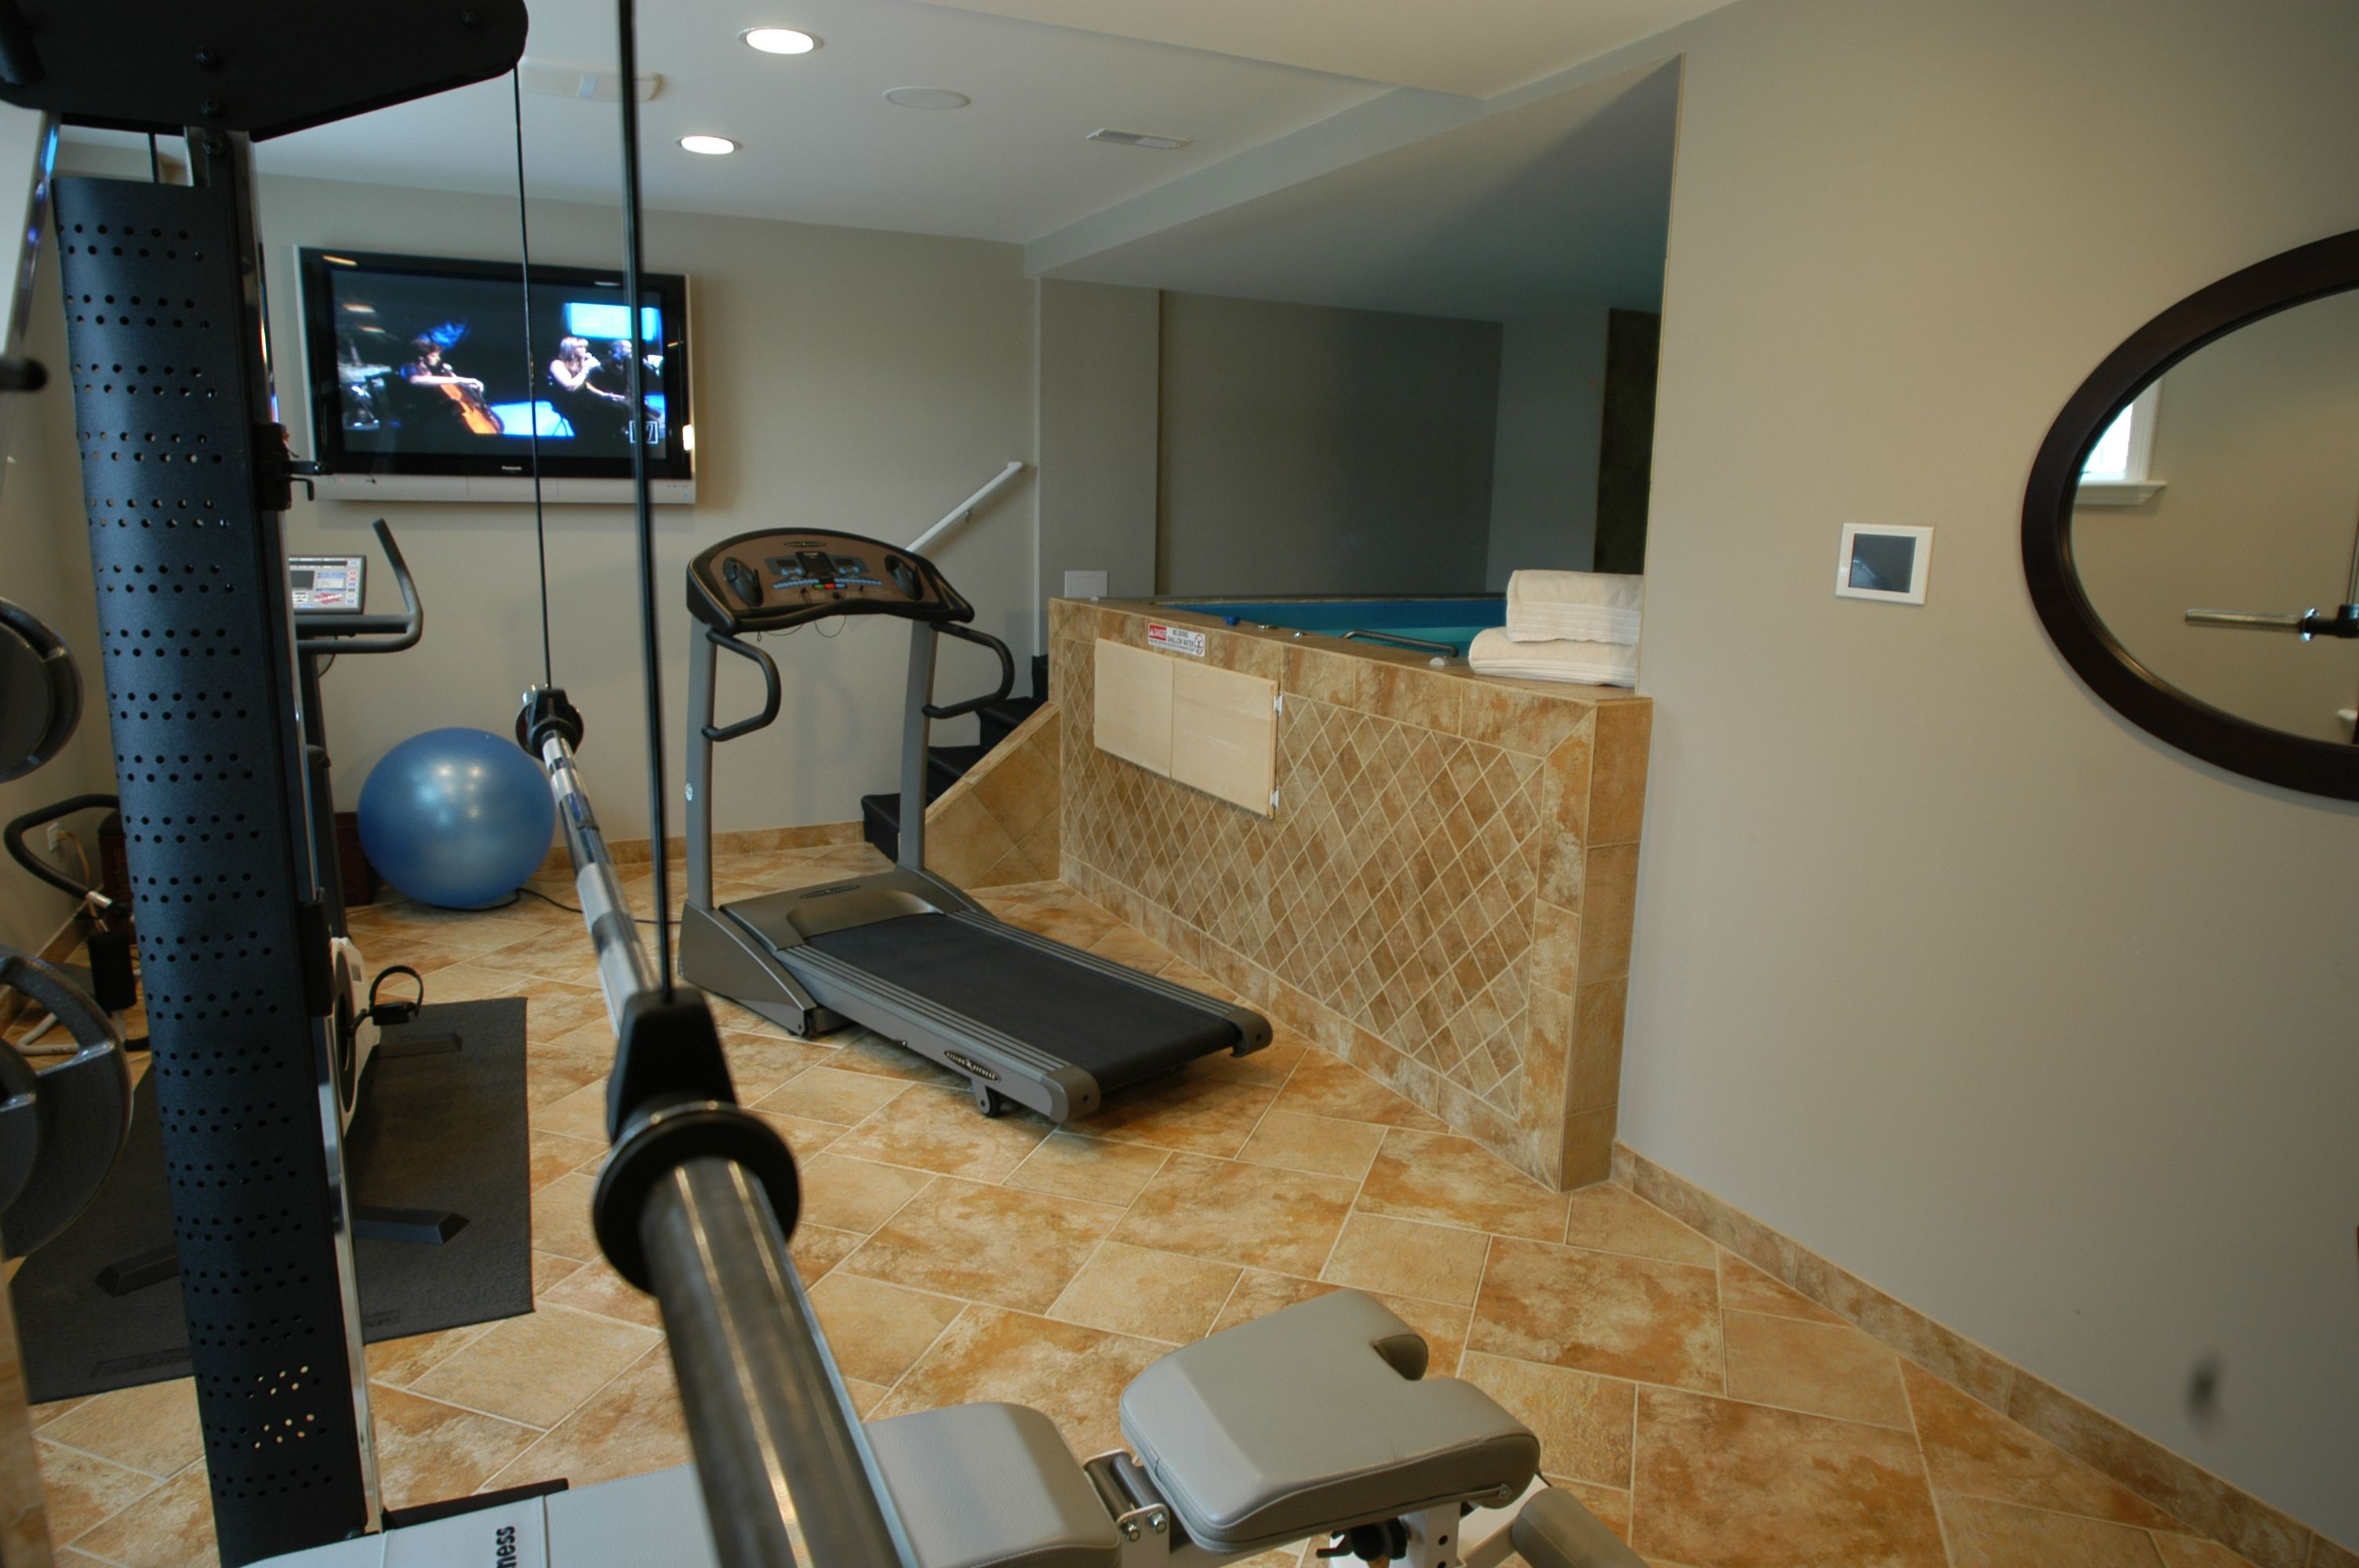 Fitness Room With Full Indoor Hot Tub Located In The Basement Indoor Hot Tub Finishing Basement Basement Design